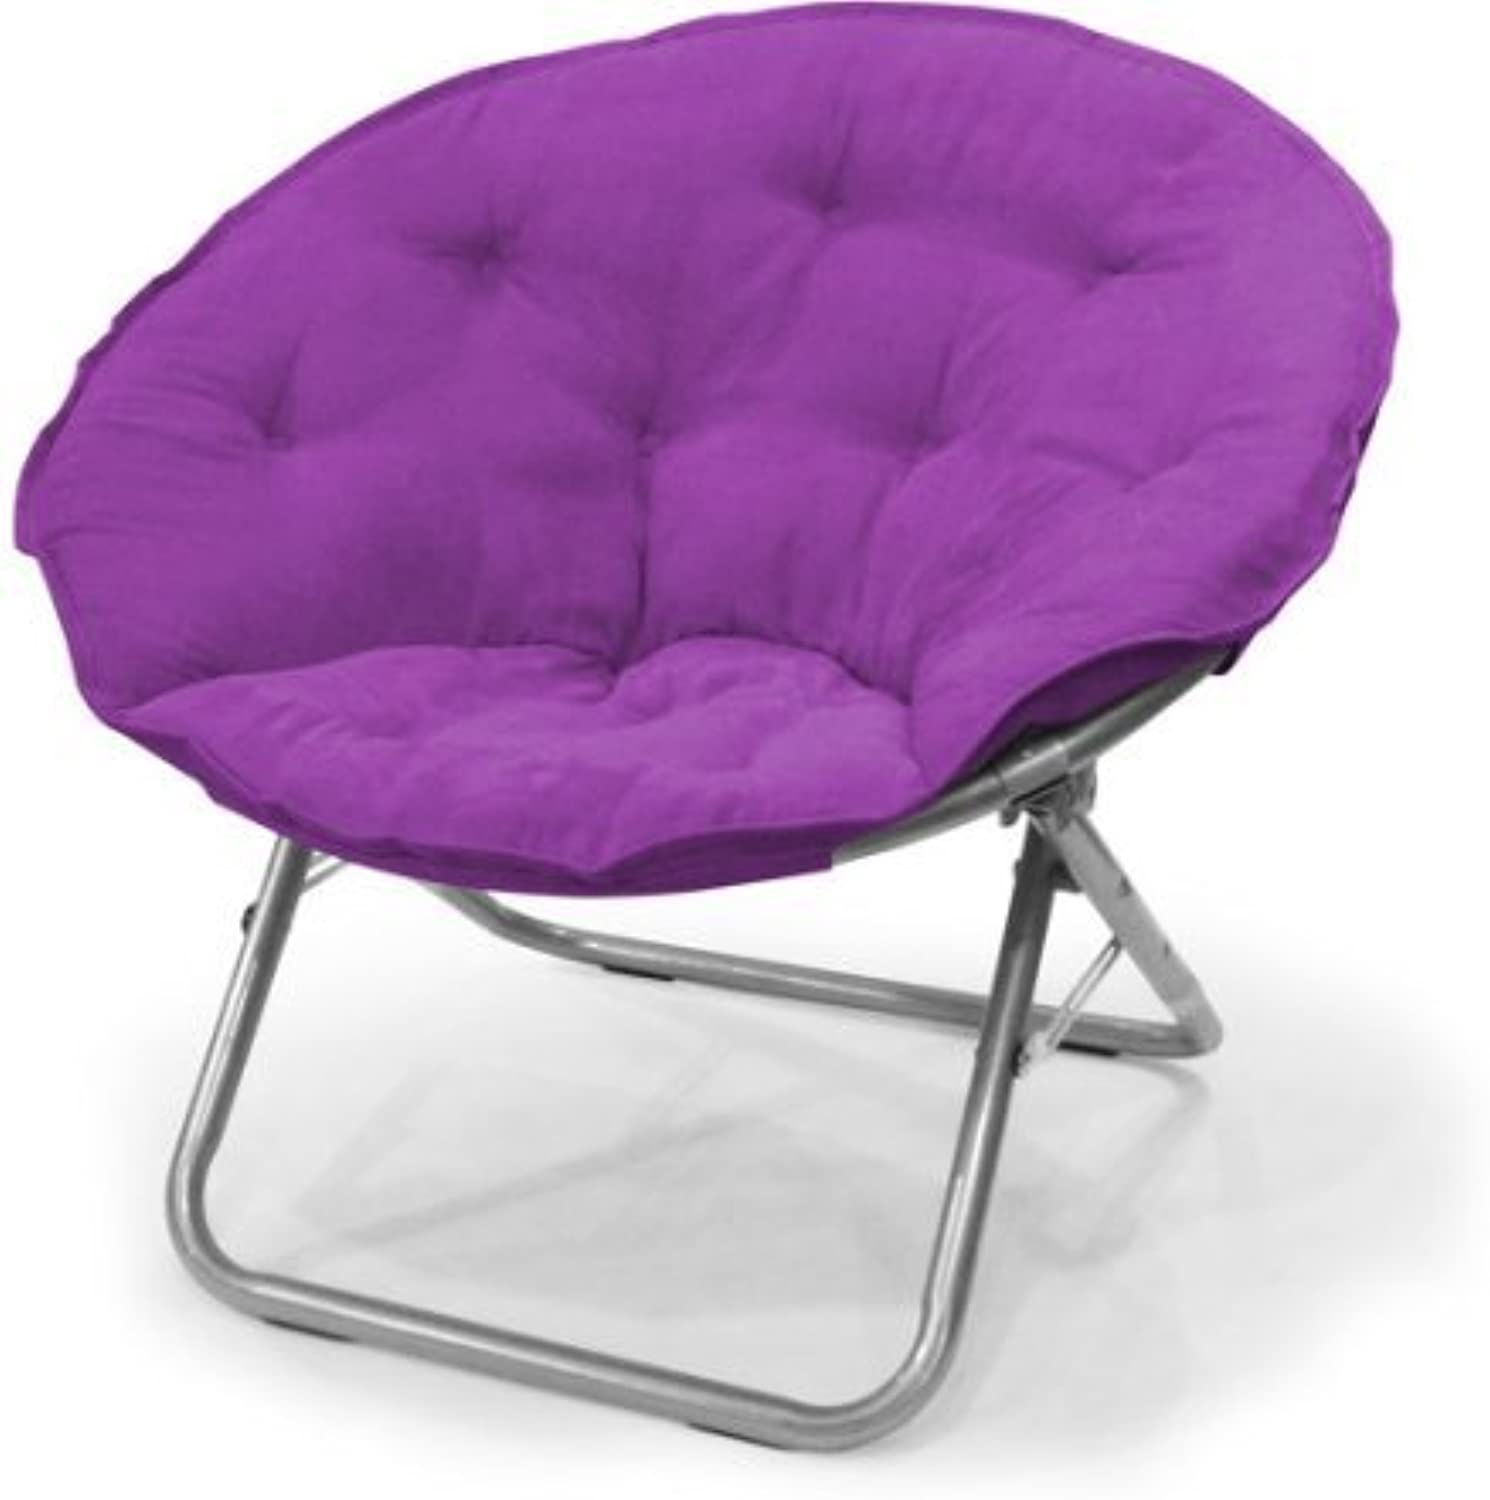 Mainstays Large Microsuede Saucer Chair Purple